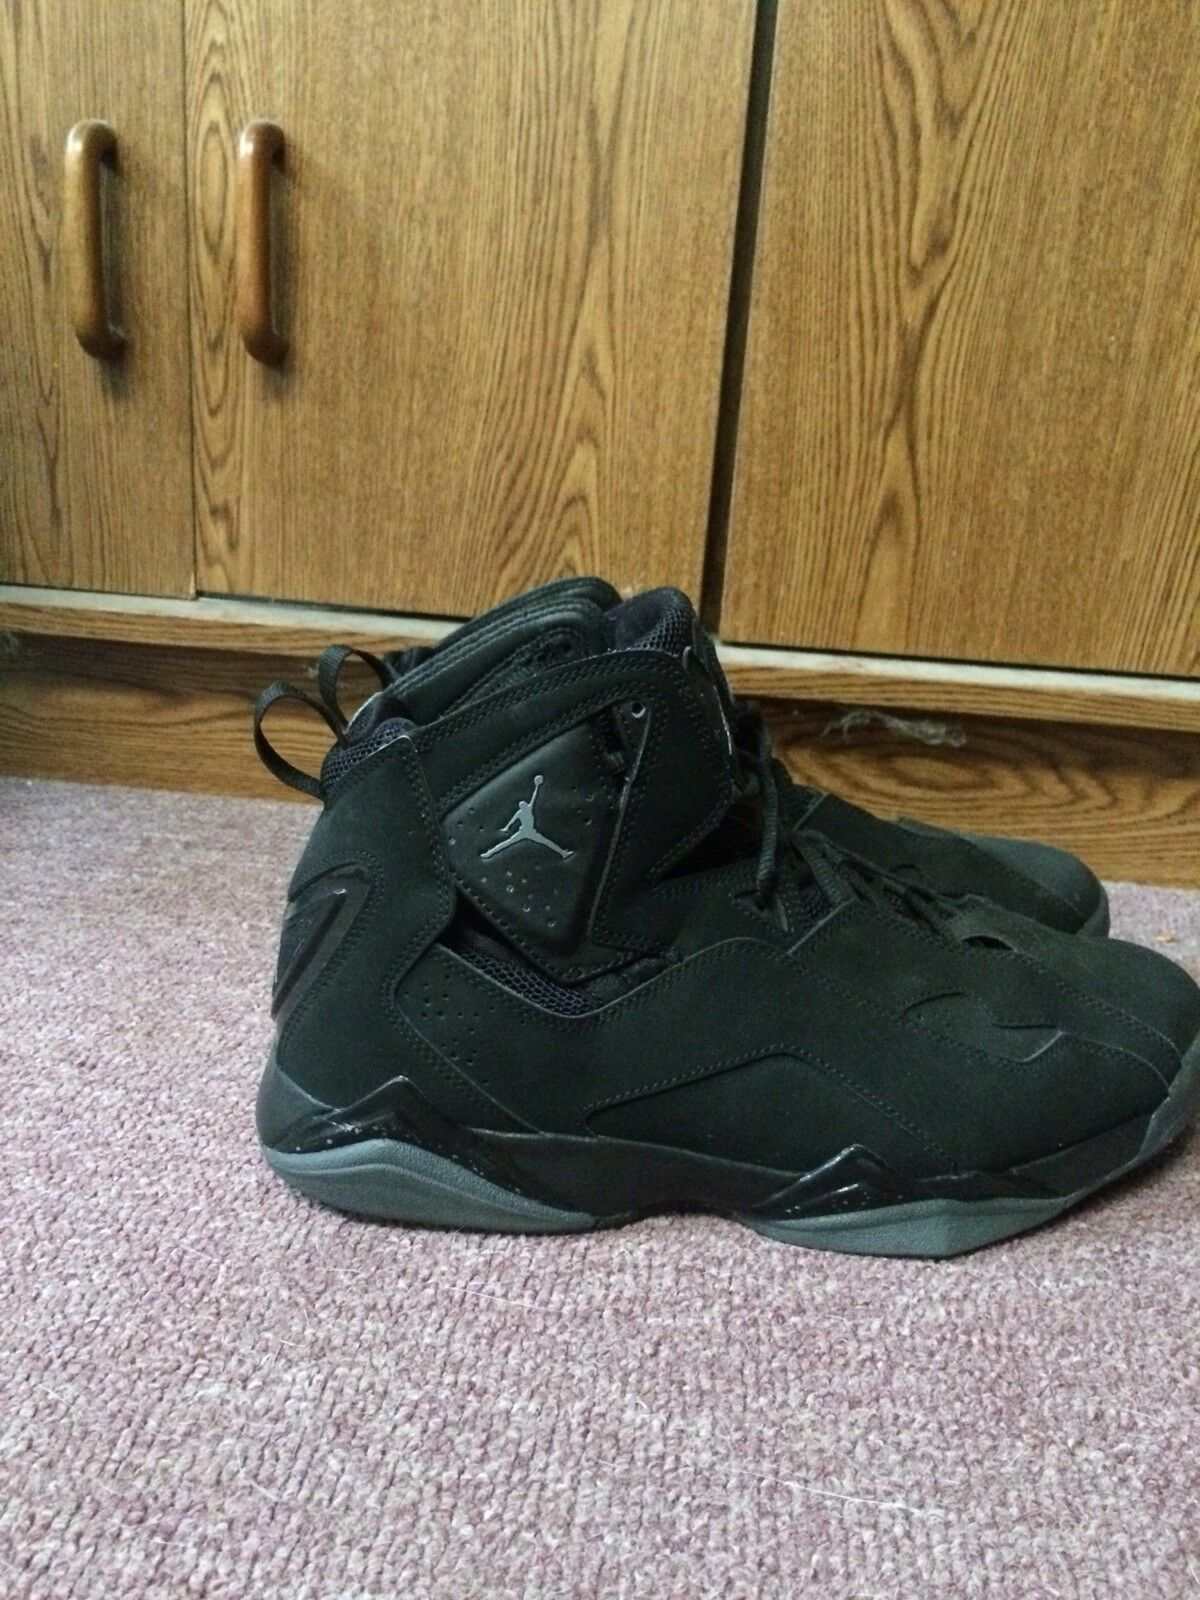 Jordan True Flight Black Basketball shoes. Comfortable Great discount